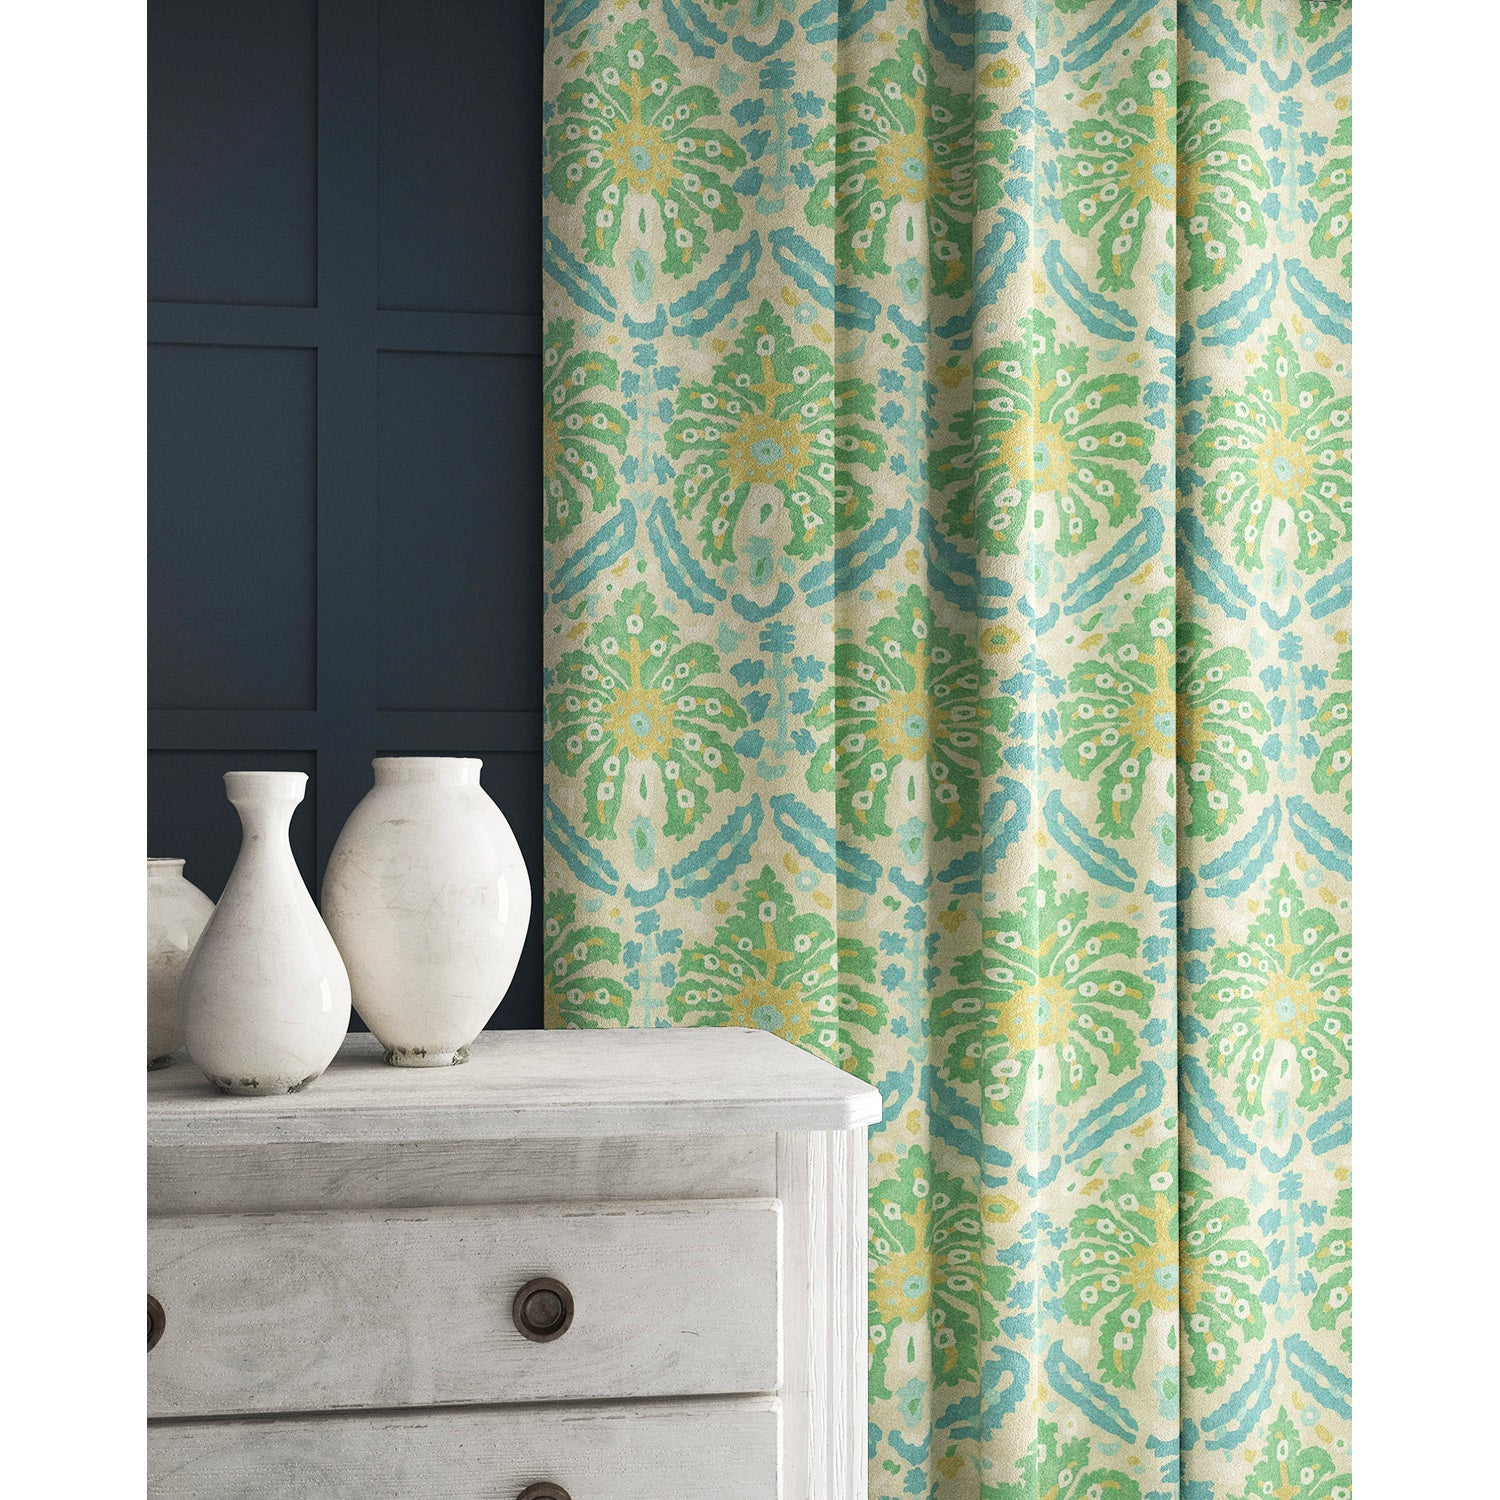 Curtain in a blue and green wool fabric with abstract palm design